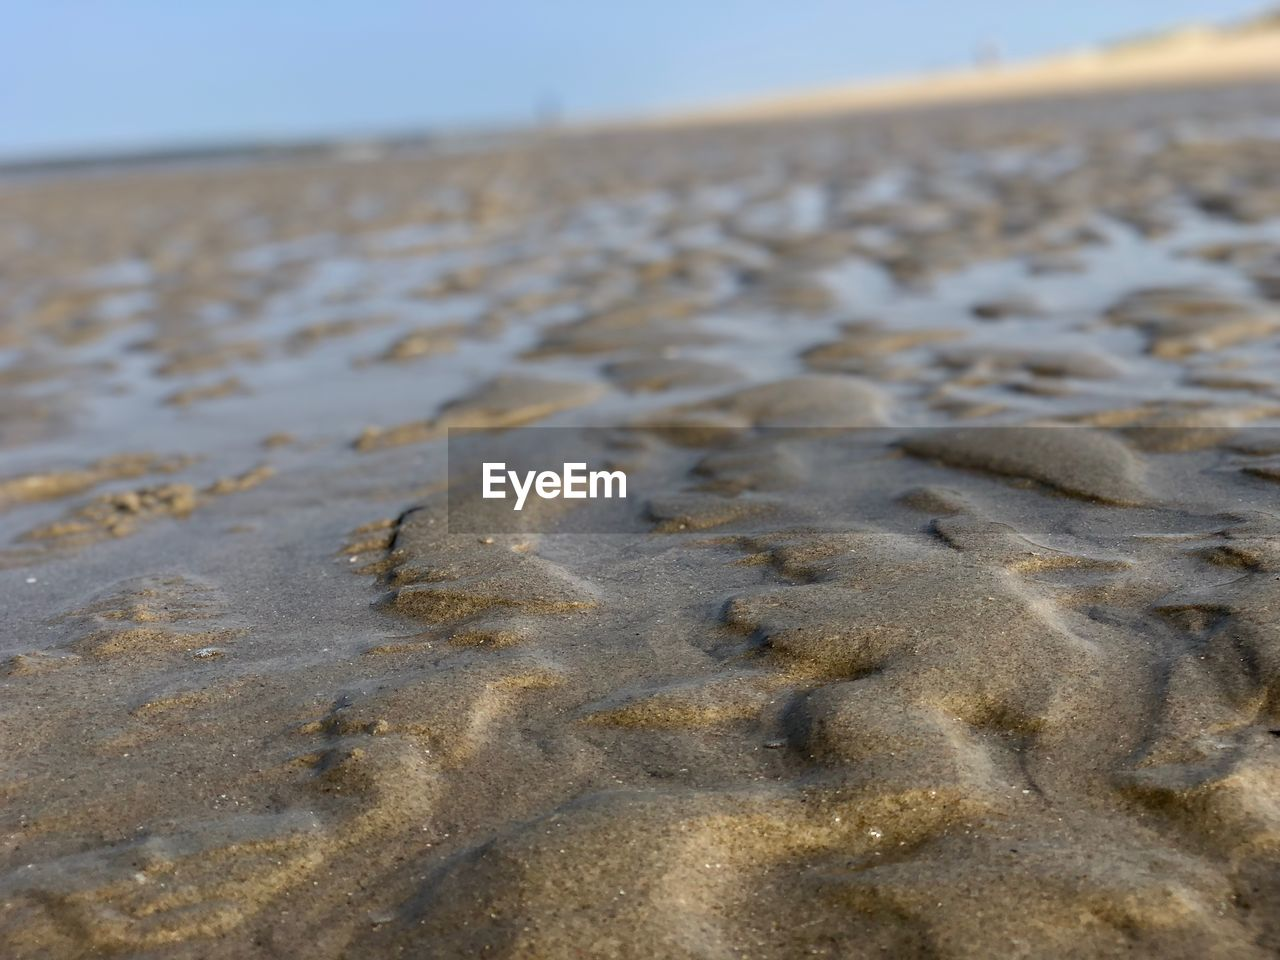 land, beach, sand, nature, no people, sky, day, focus on foreground, tranquility, beauty in nature, landscape, close-up, outdoors, environment, scenics - nature, water, sea, pattern, selective focus, clear sky, surface level, arid climate